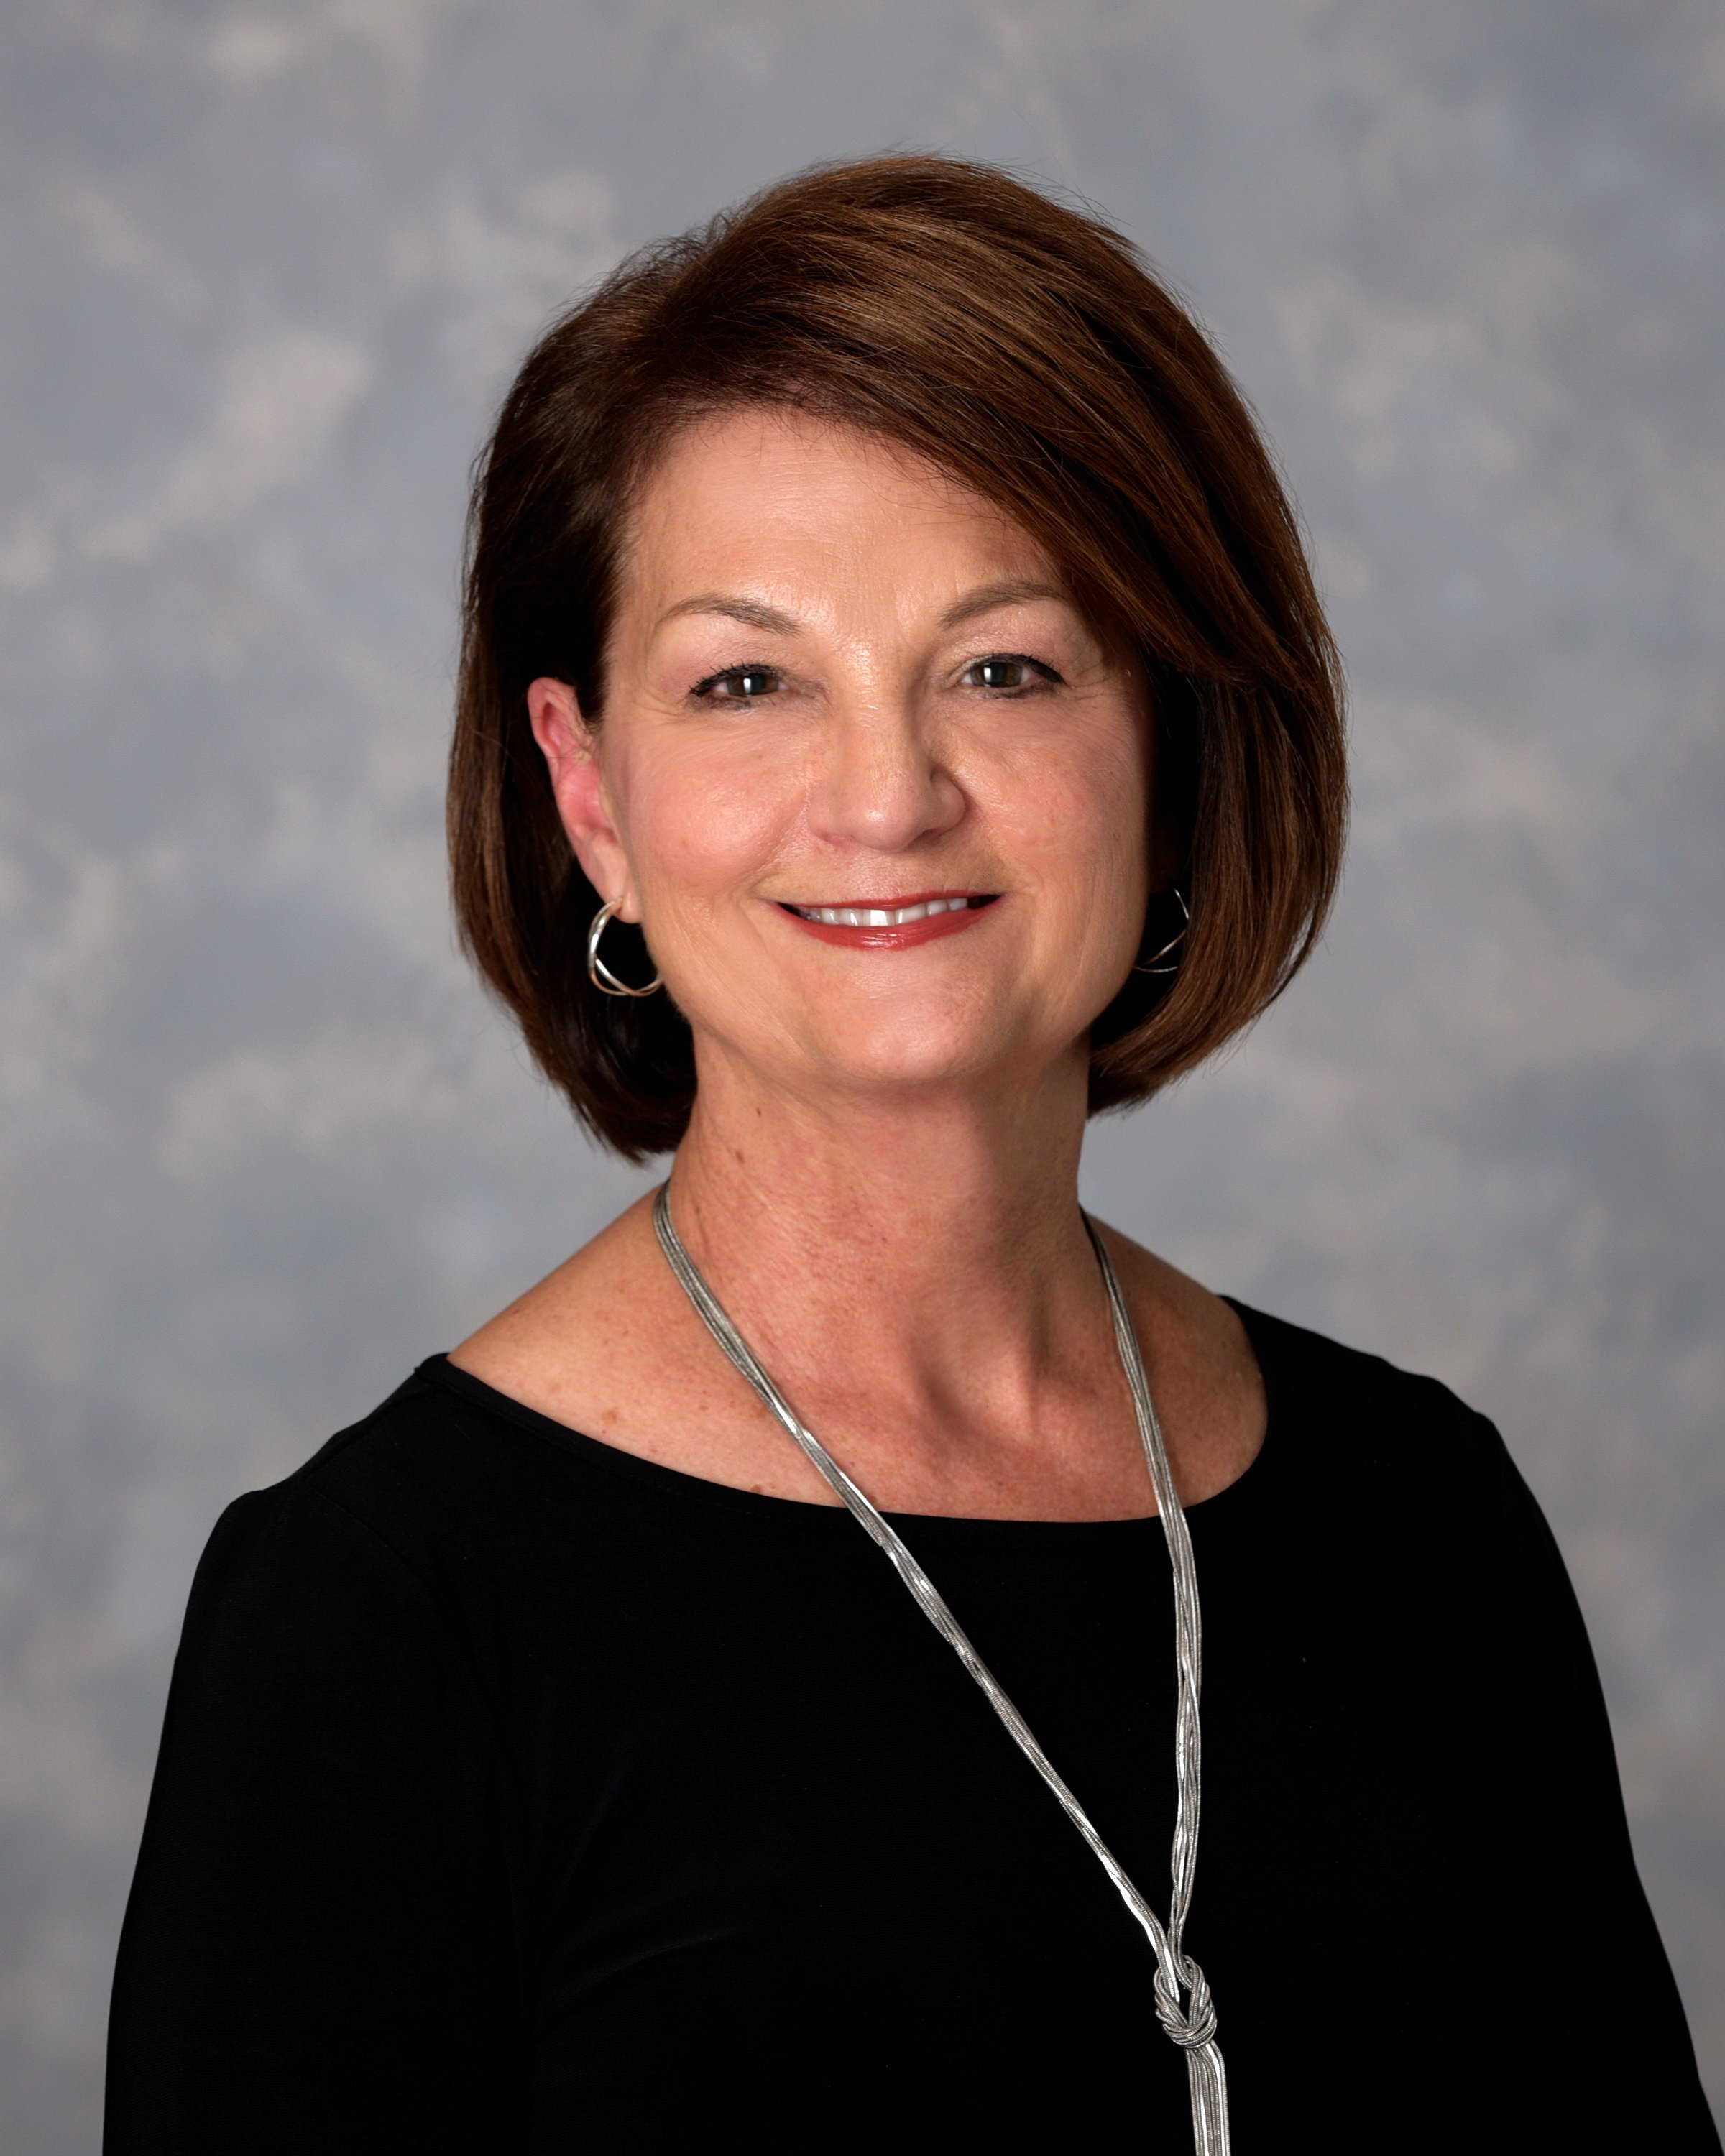 Debby Brian Appointed to Lane Board of Commissioners